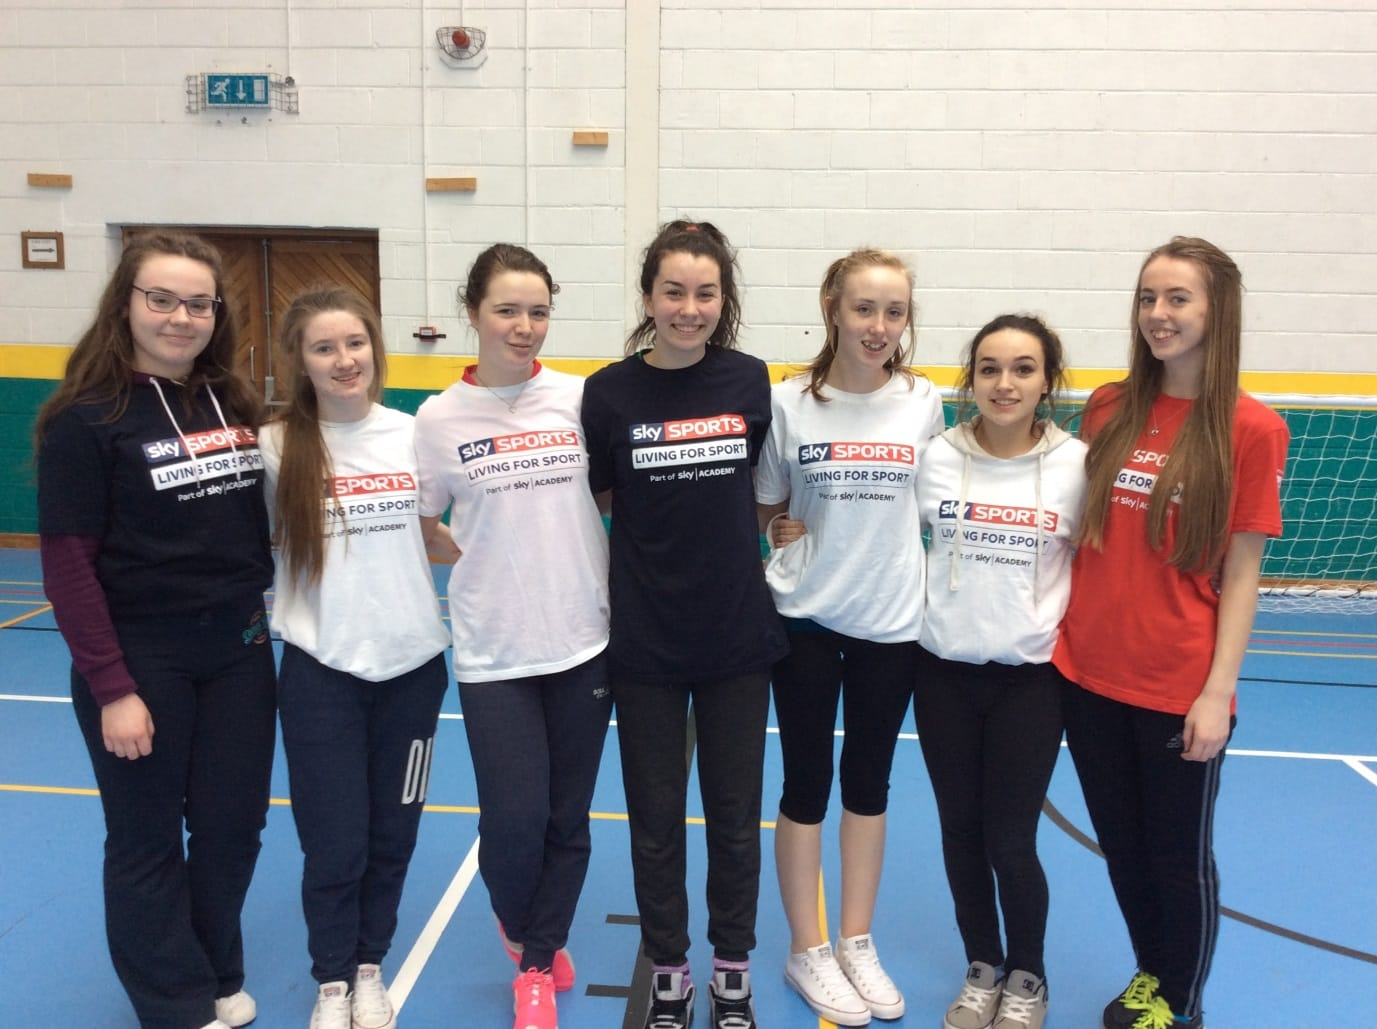 Feb 2016: Chloe Collins, Sara Flately, Ciara Noonan, Stacey Flynn, Shauna Hallinan, Kara White and Orla Wrenn pictured during leadership training as part of SKY SPORTS living for sports programme